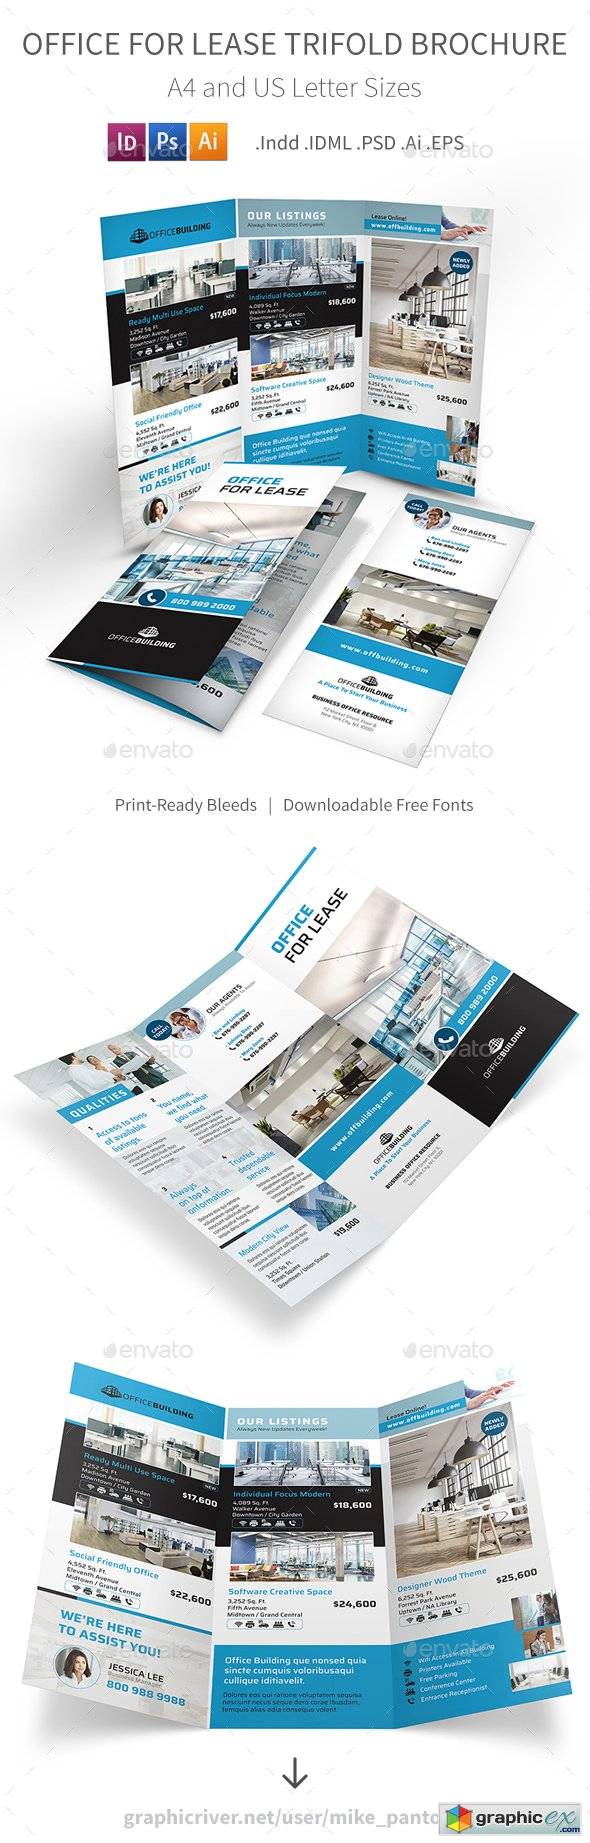 Office For Lease Trifold Brochure